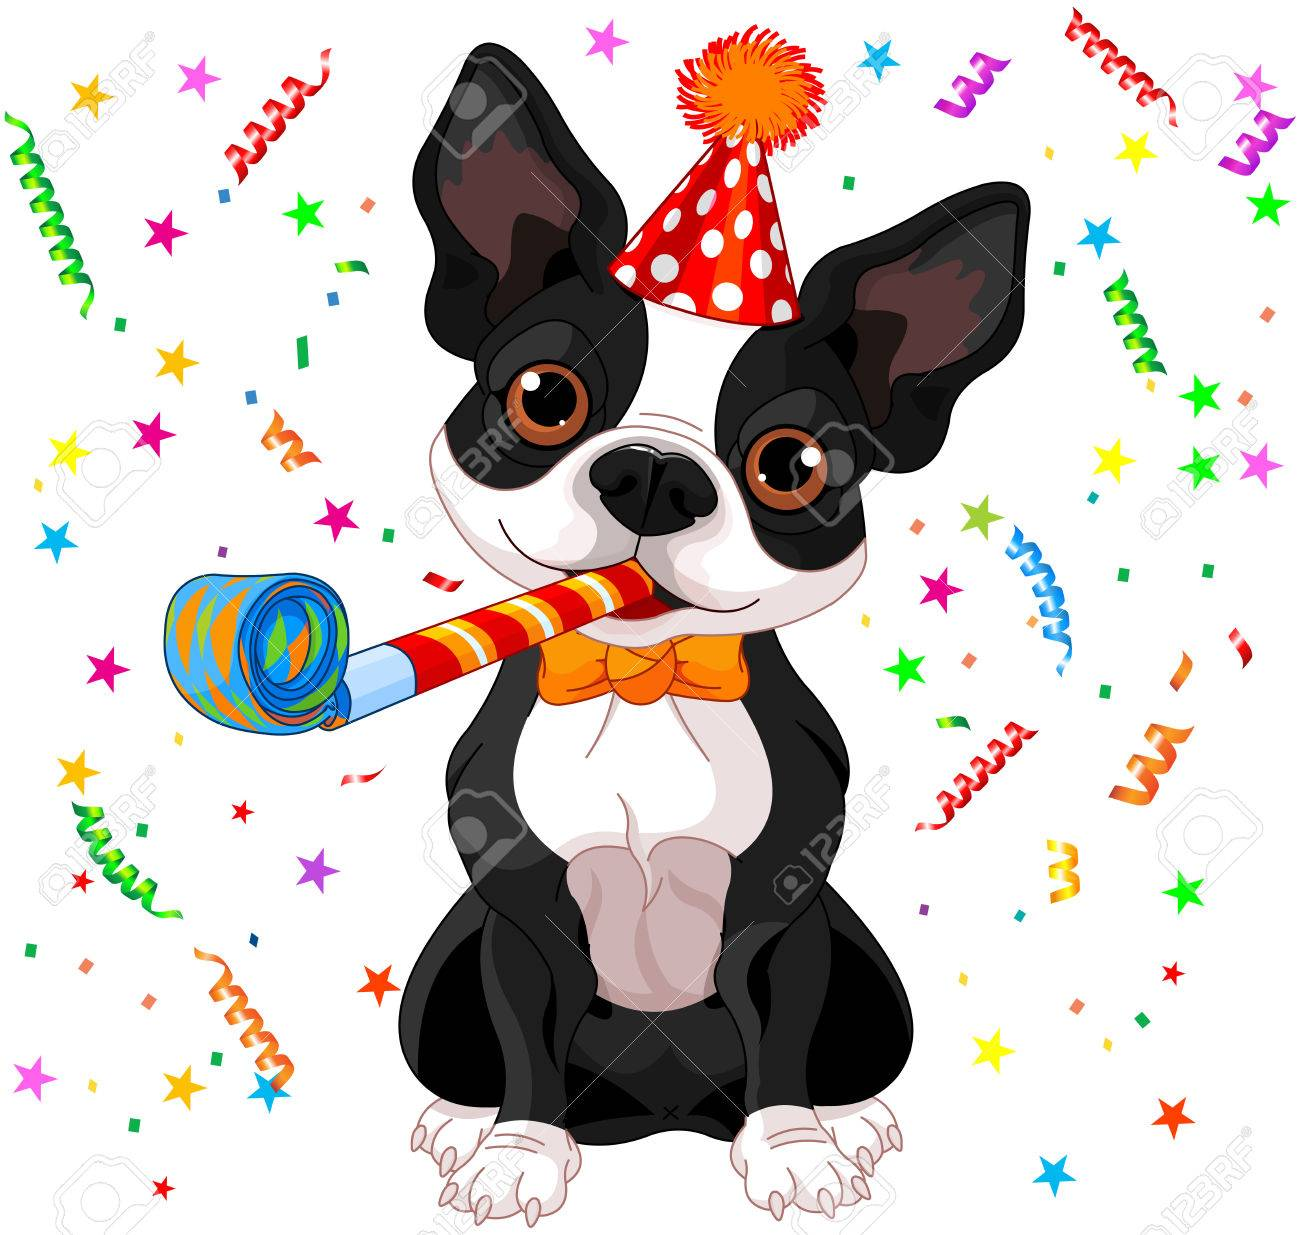 Agressif/réactif avec ses congénères - Page 22 35588778-illustration-of-cute-boston-terrier-celebrating